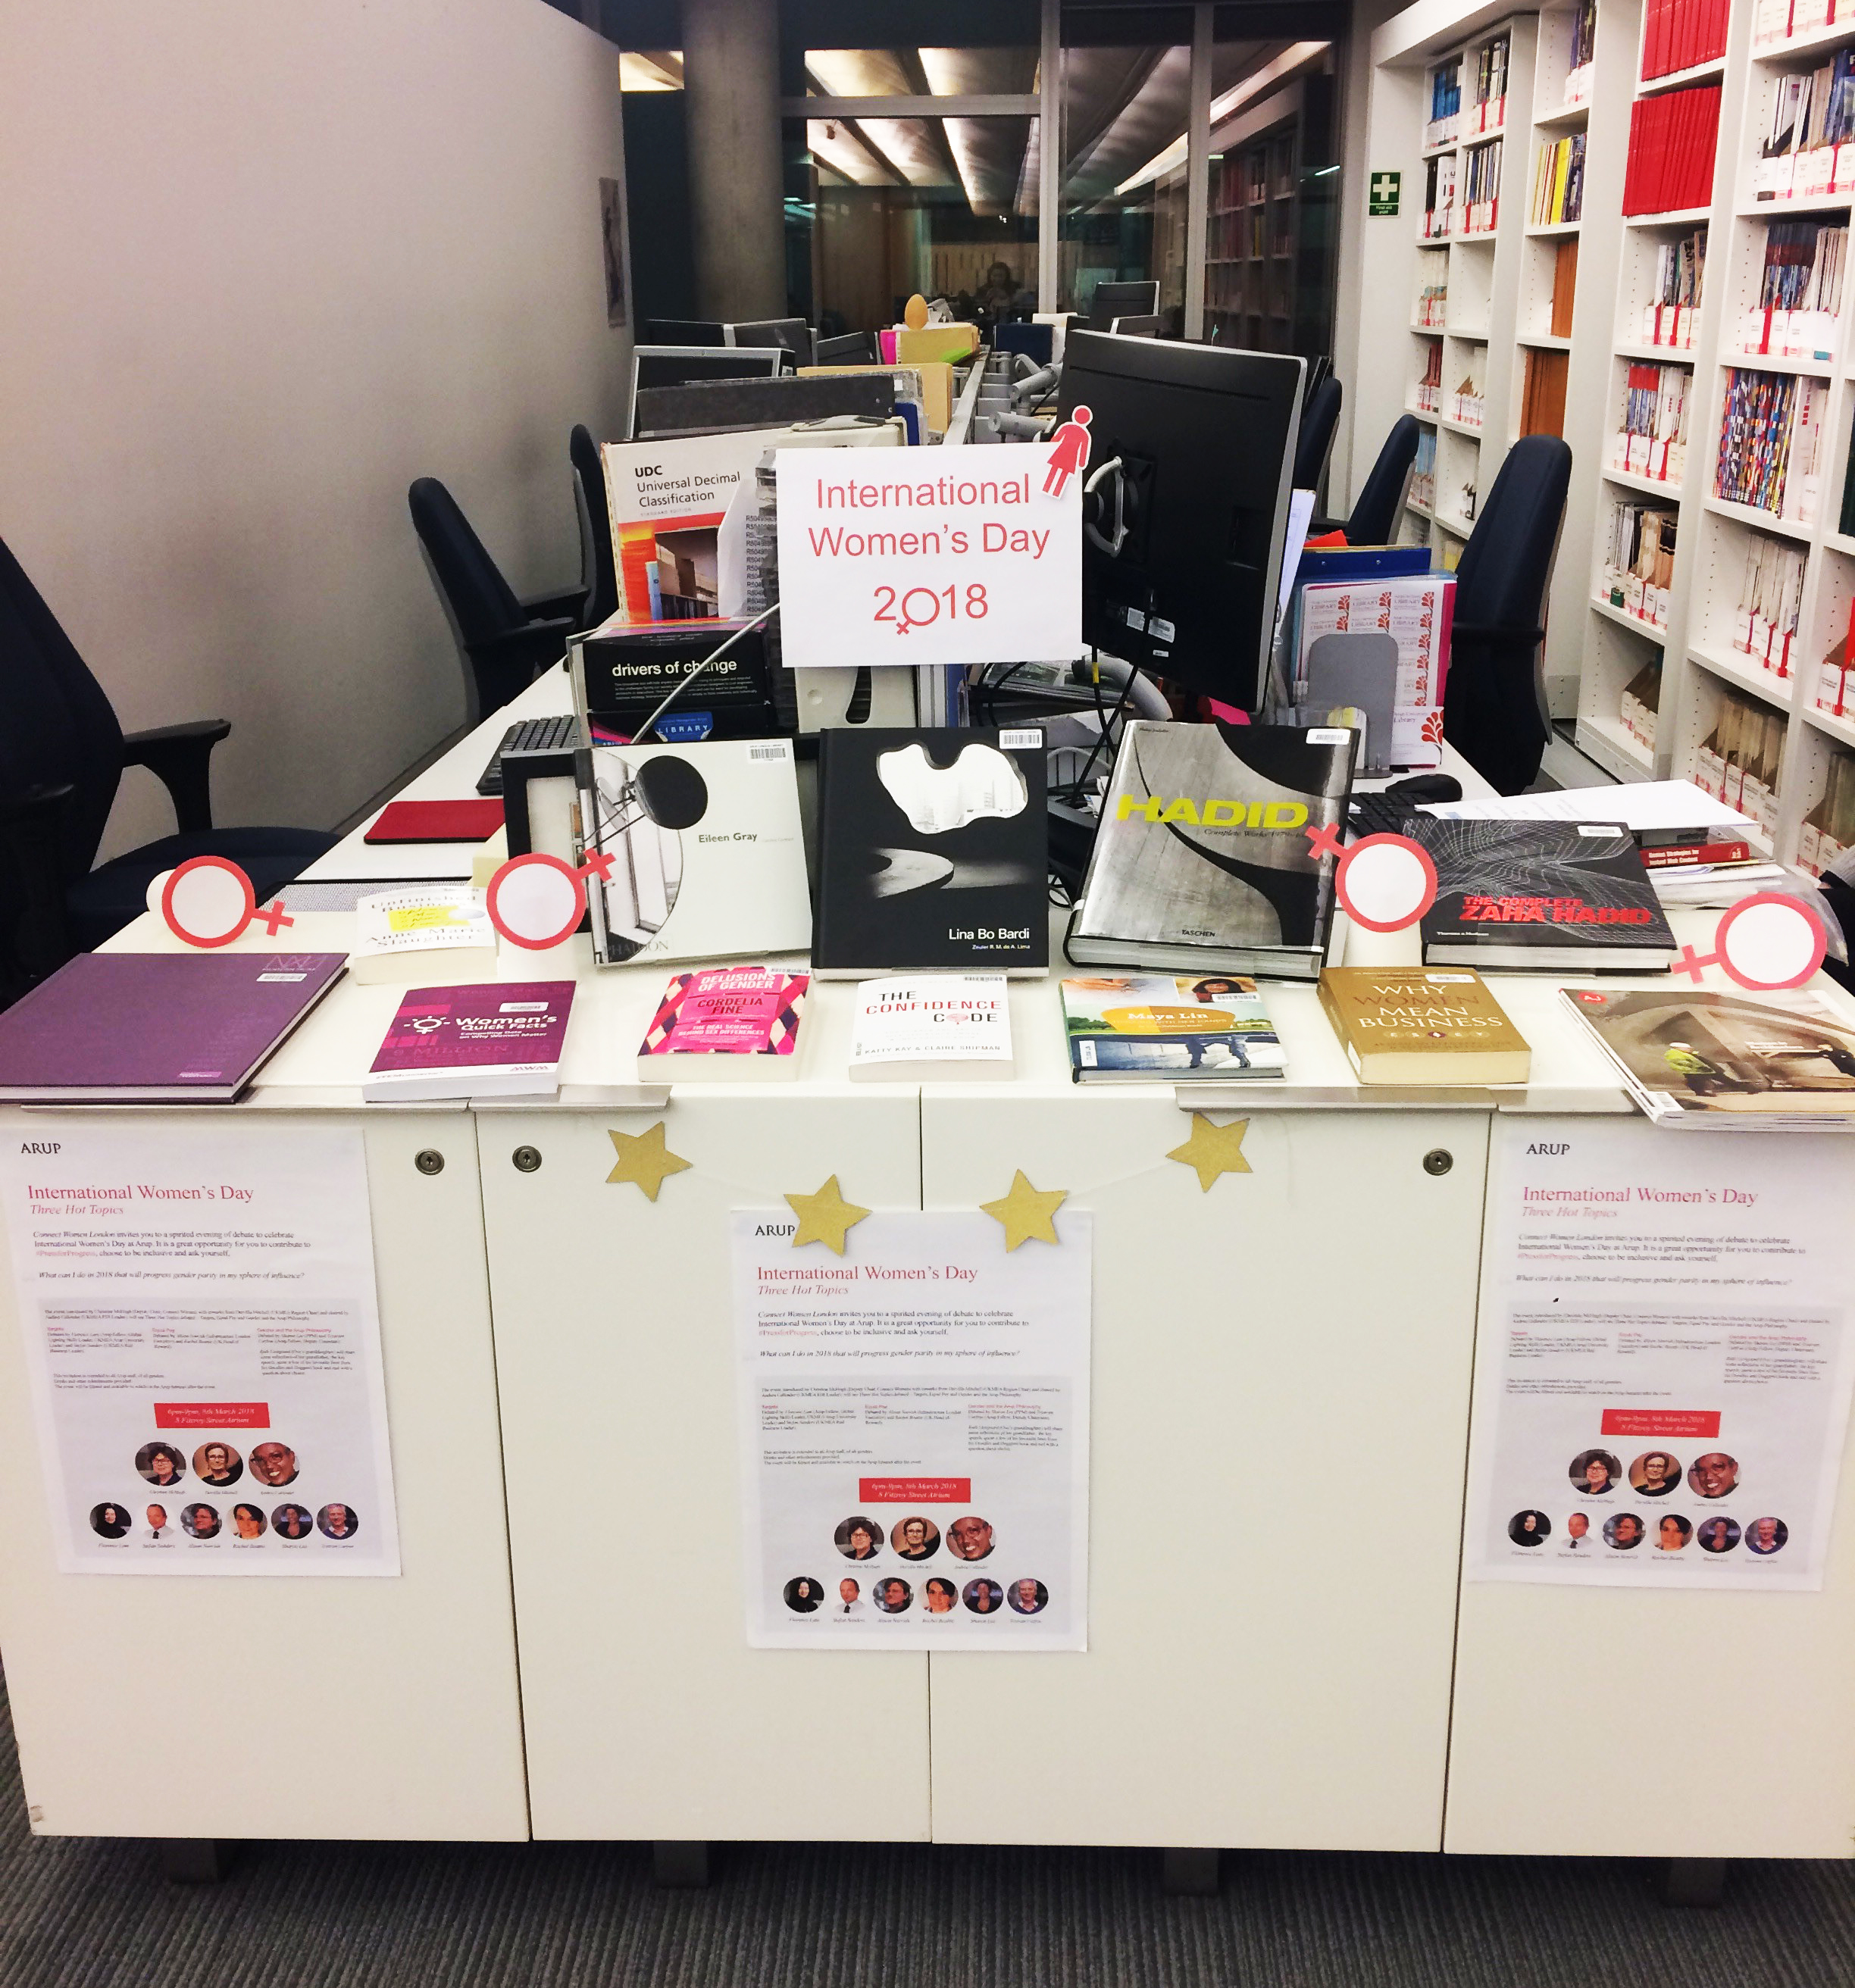 Librarian Design Share Inspiration For Library Creatives Science Projects To Find Out And Electronics On Pinterest Photo Of An International Womens Day Book Display In Academic